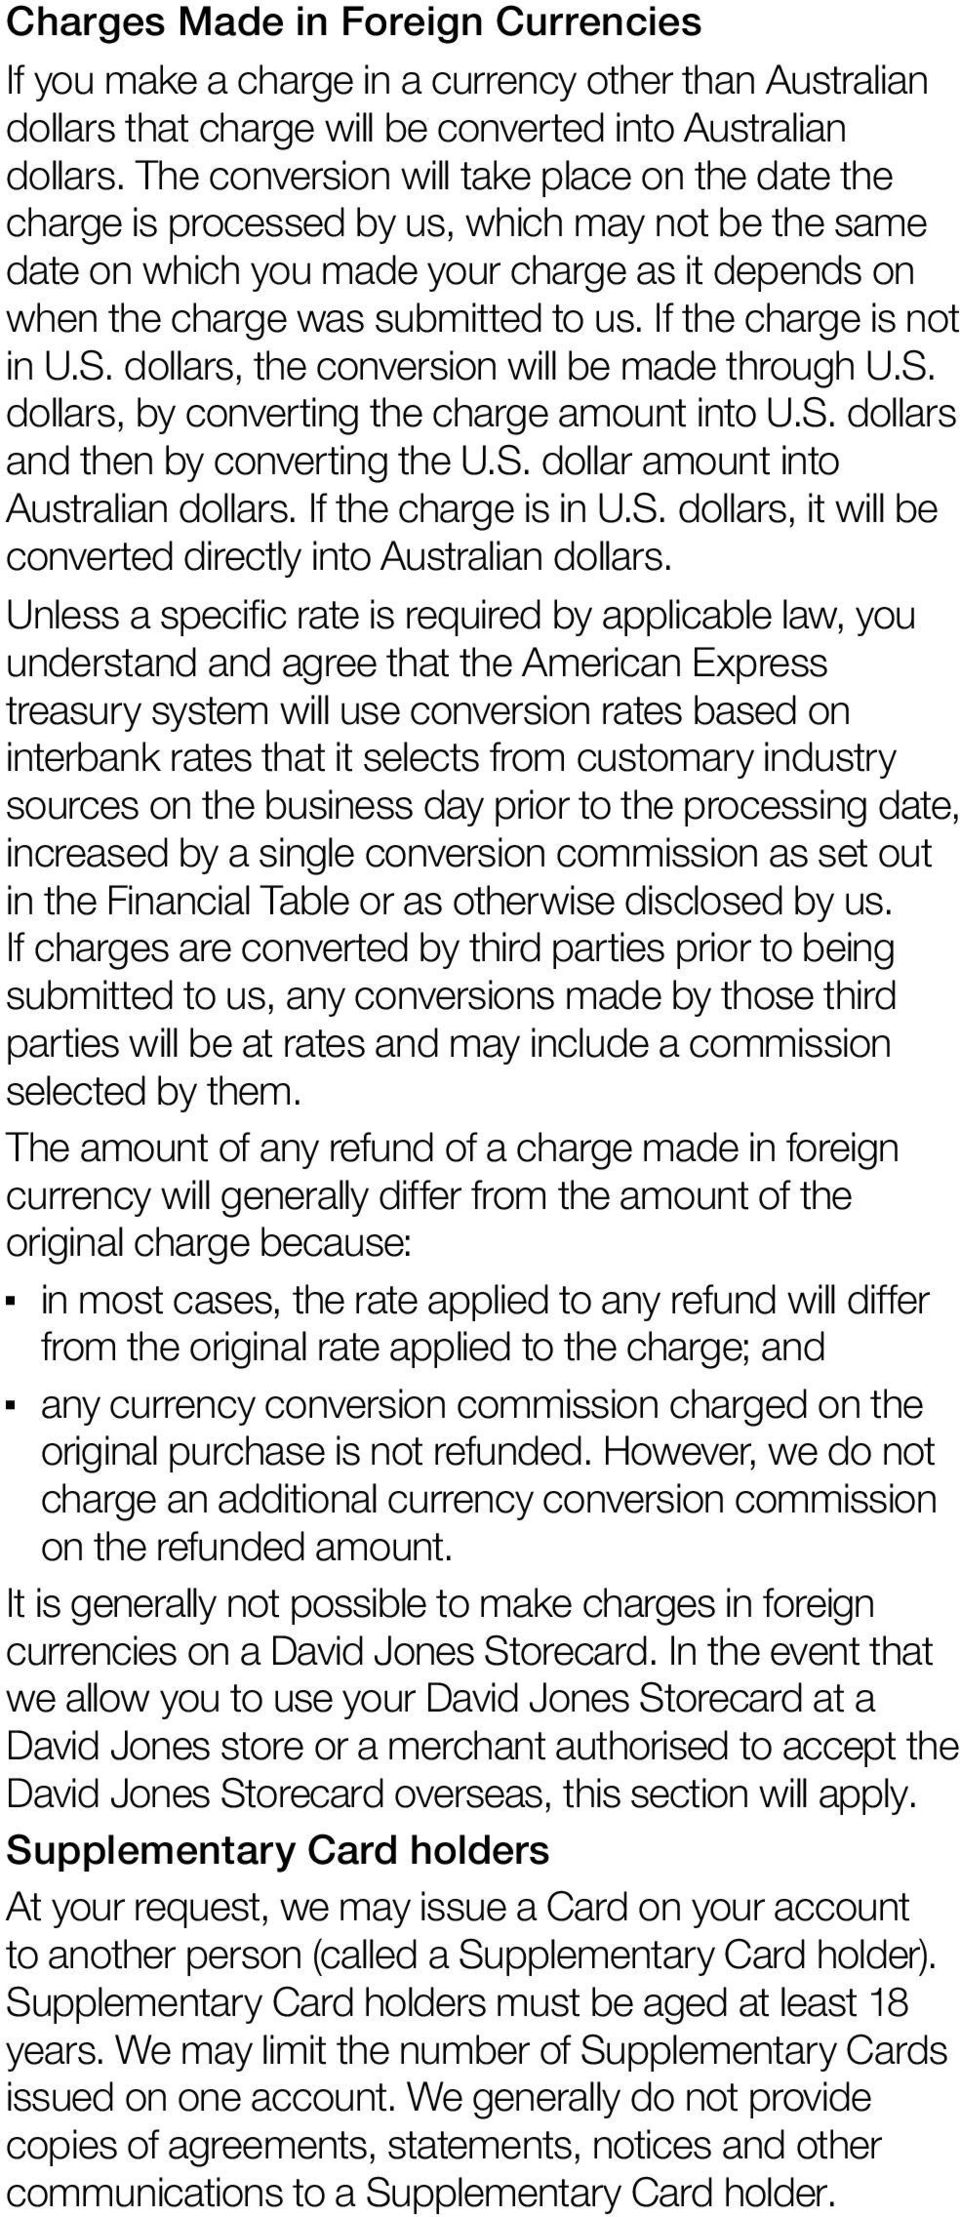 If the charge is not in U.S. dollars, the conversion will be made through U.S. dollars, by converting the charge amount into U.S. dollars and then by converting the U.S. dollar amount into Australian dollars.